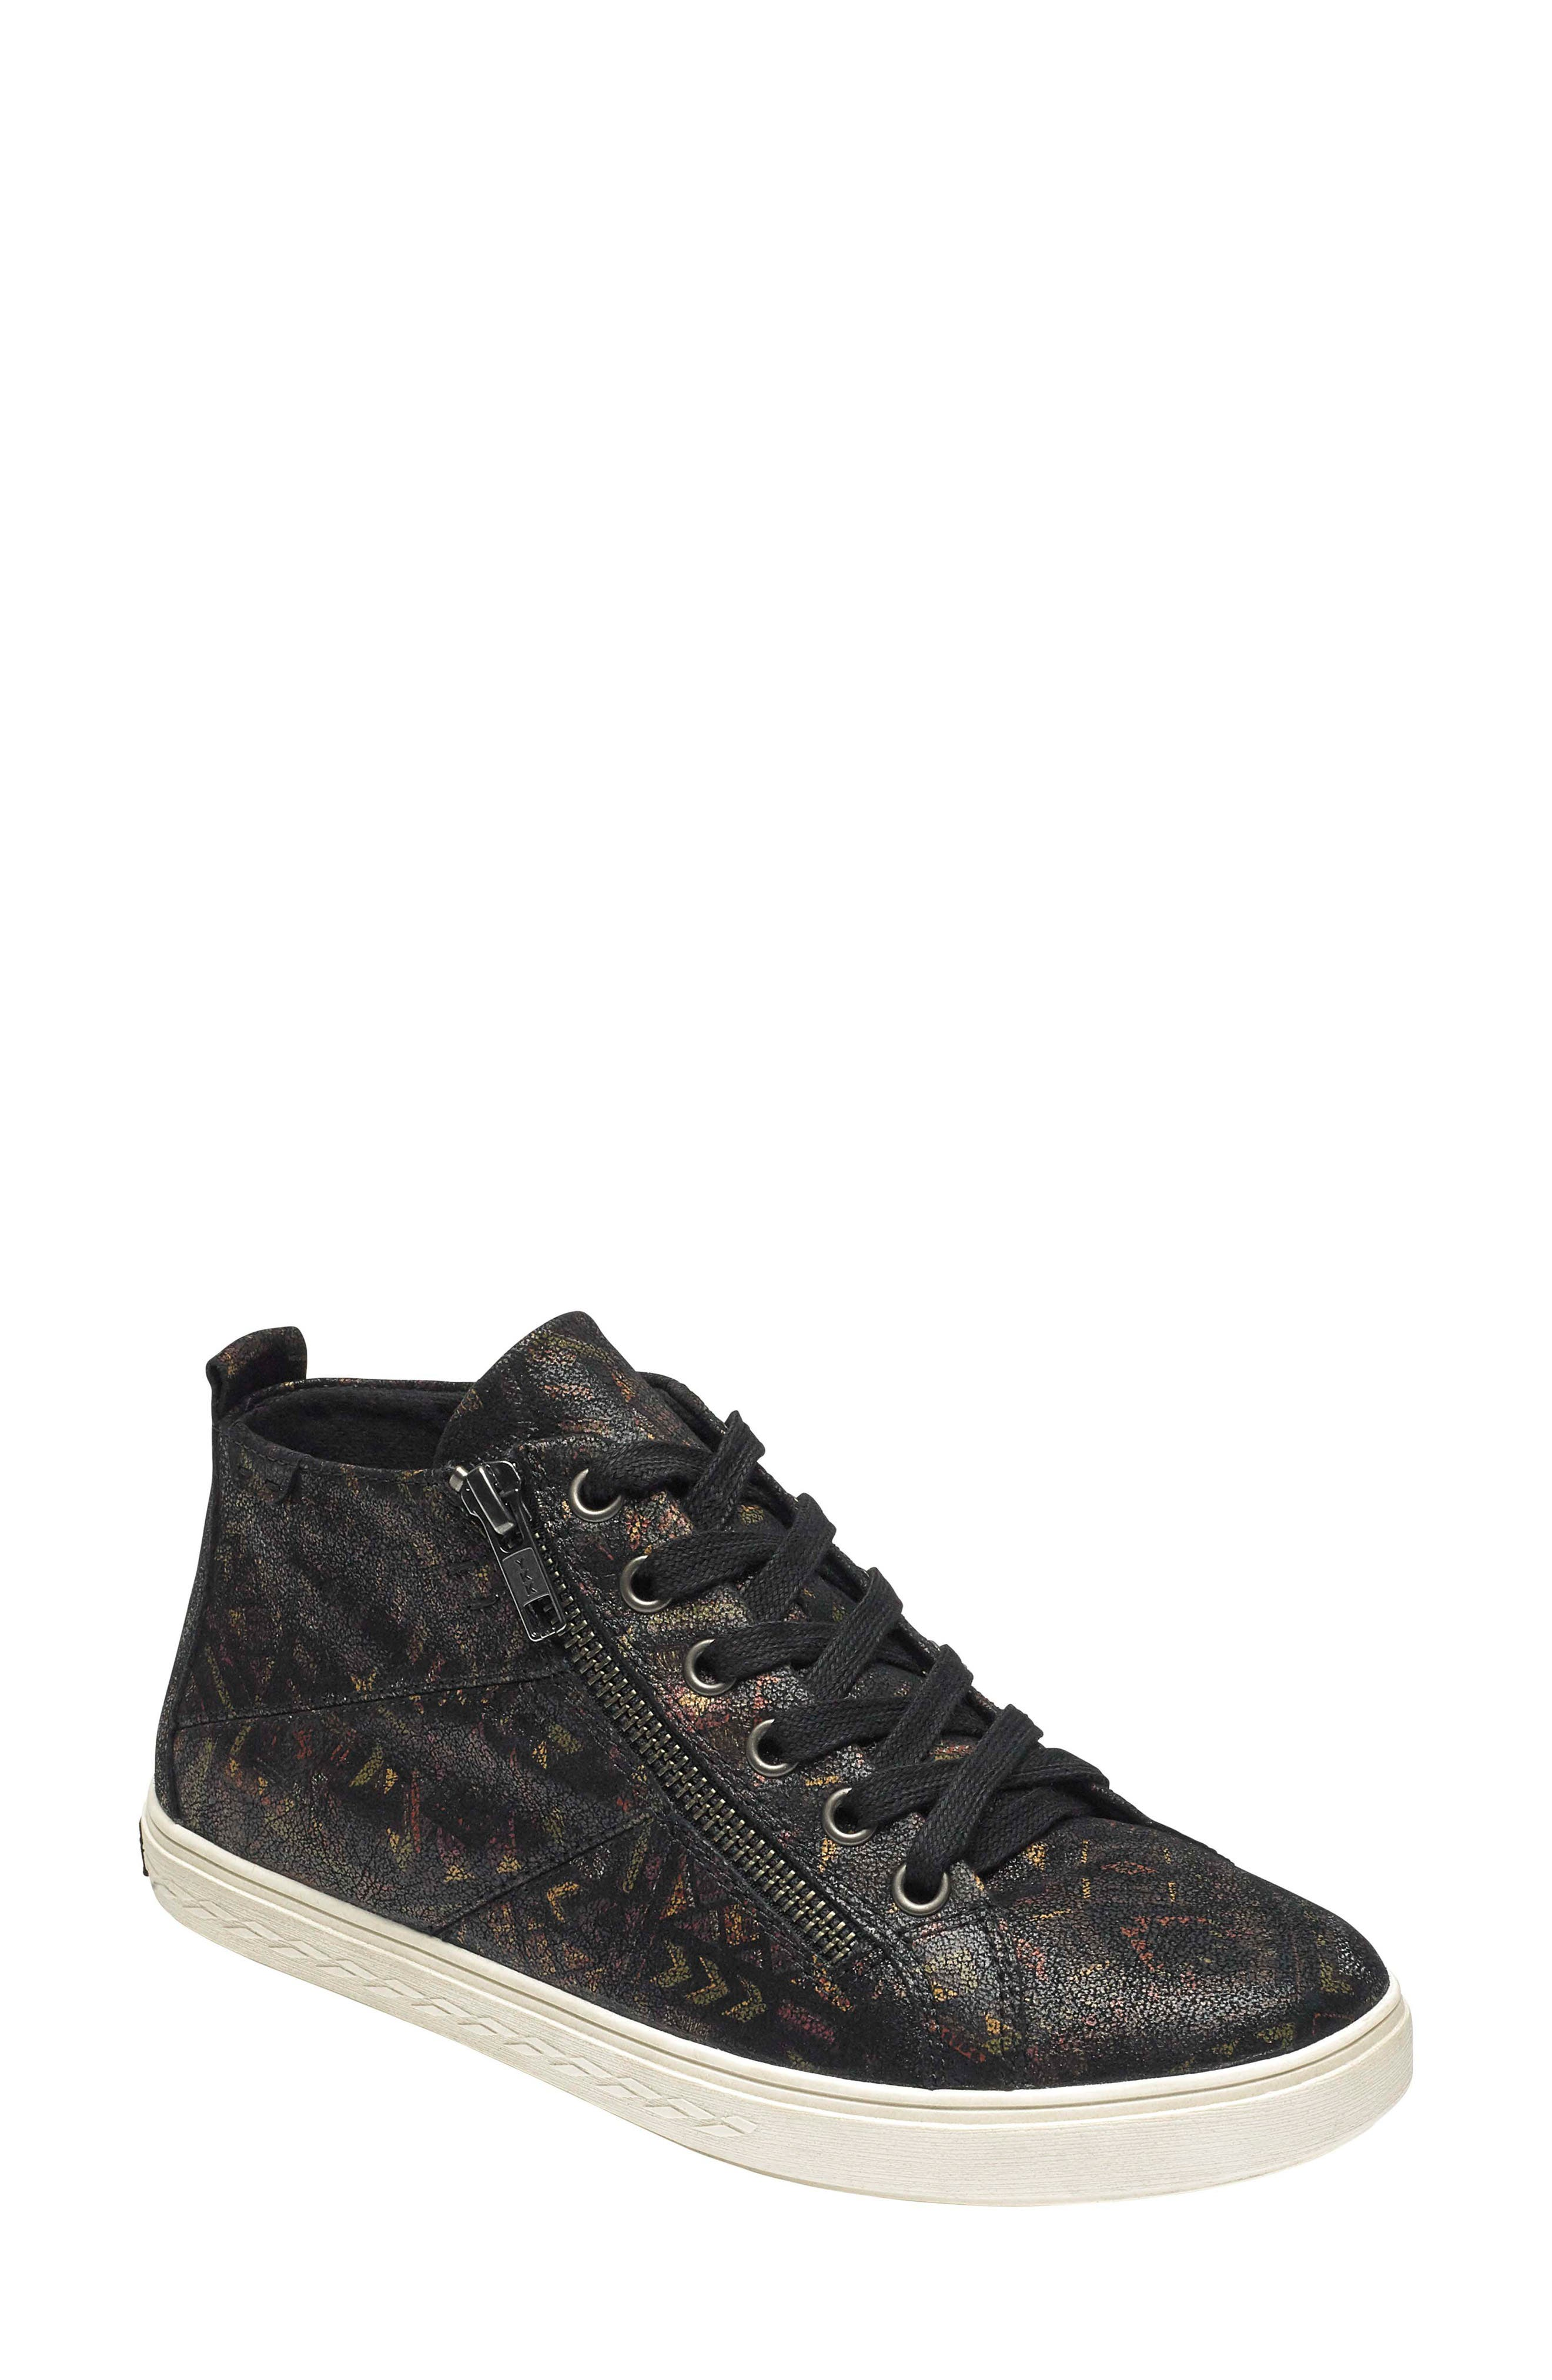 Willa High Top Sneaker,                             Main thumbnail 1, color,                             NOVELTY PRINT LEATHER